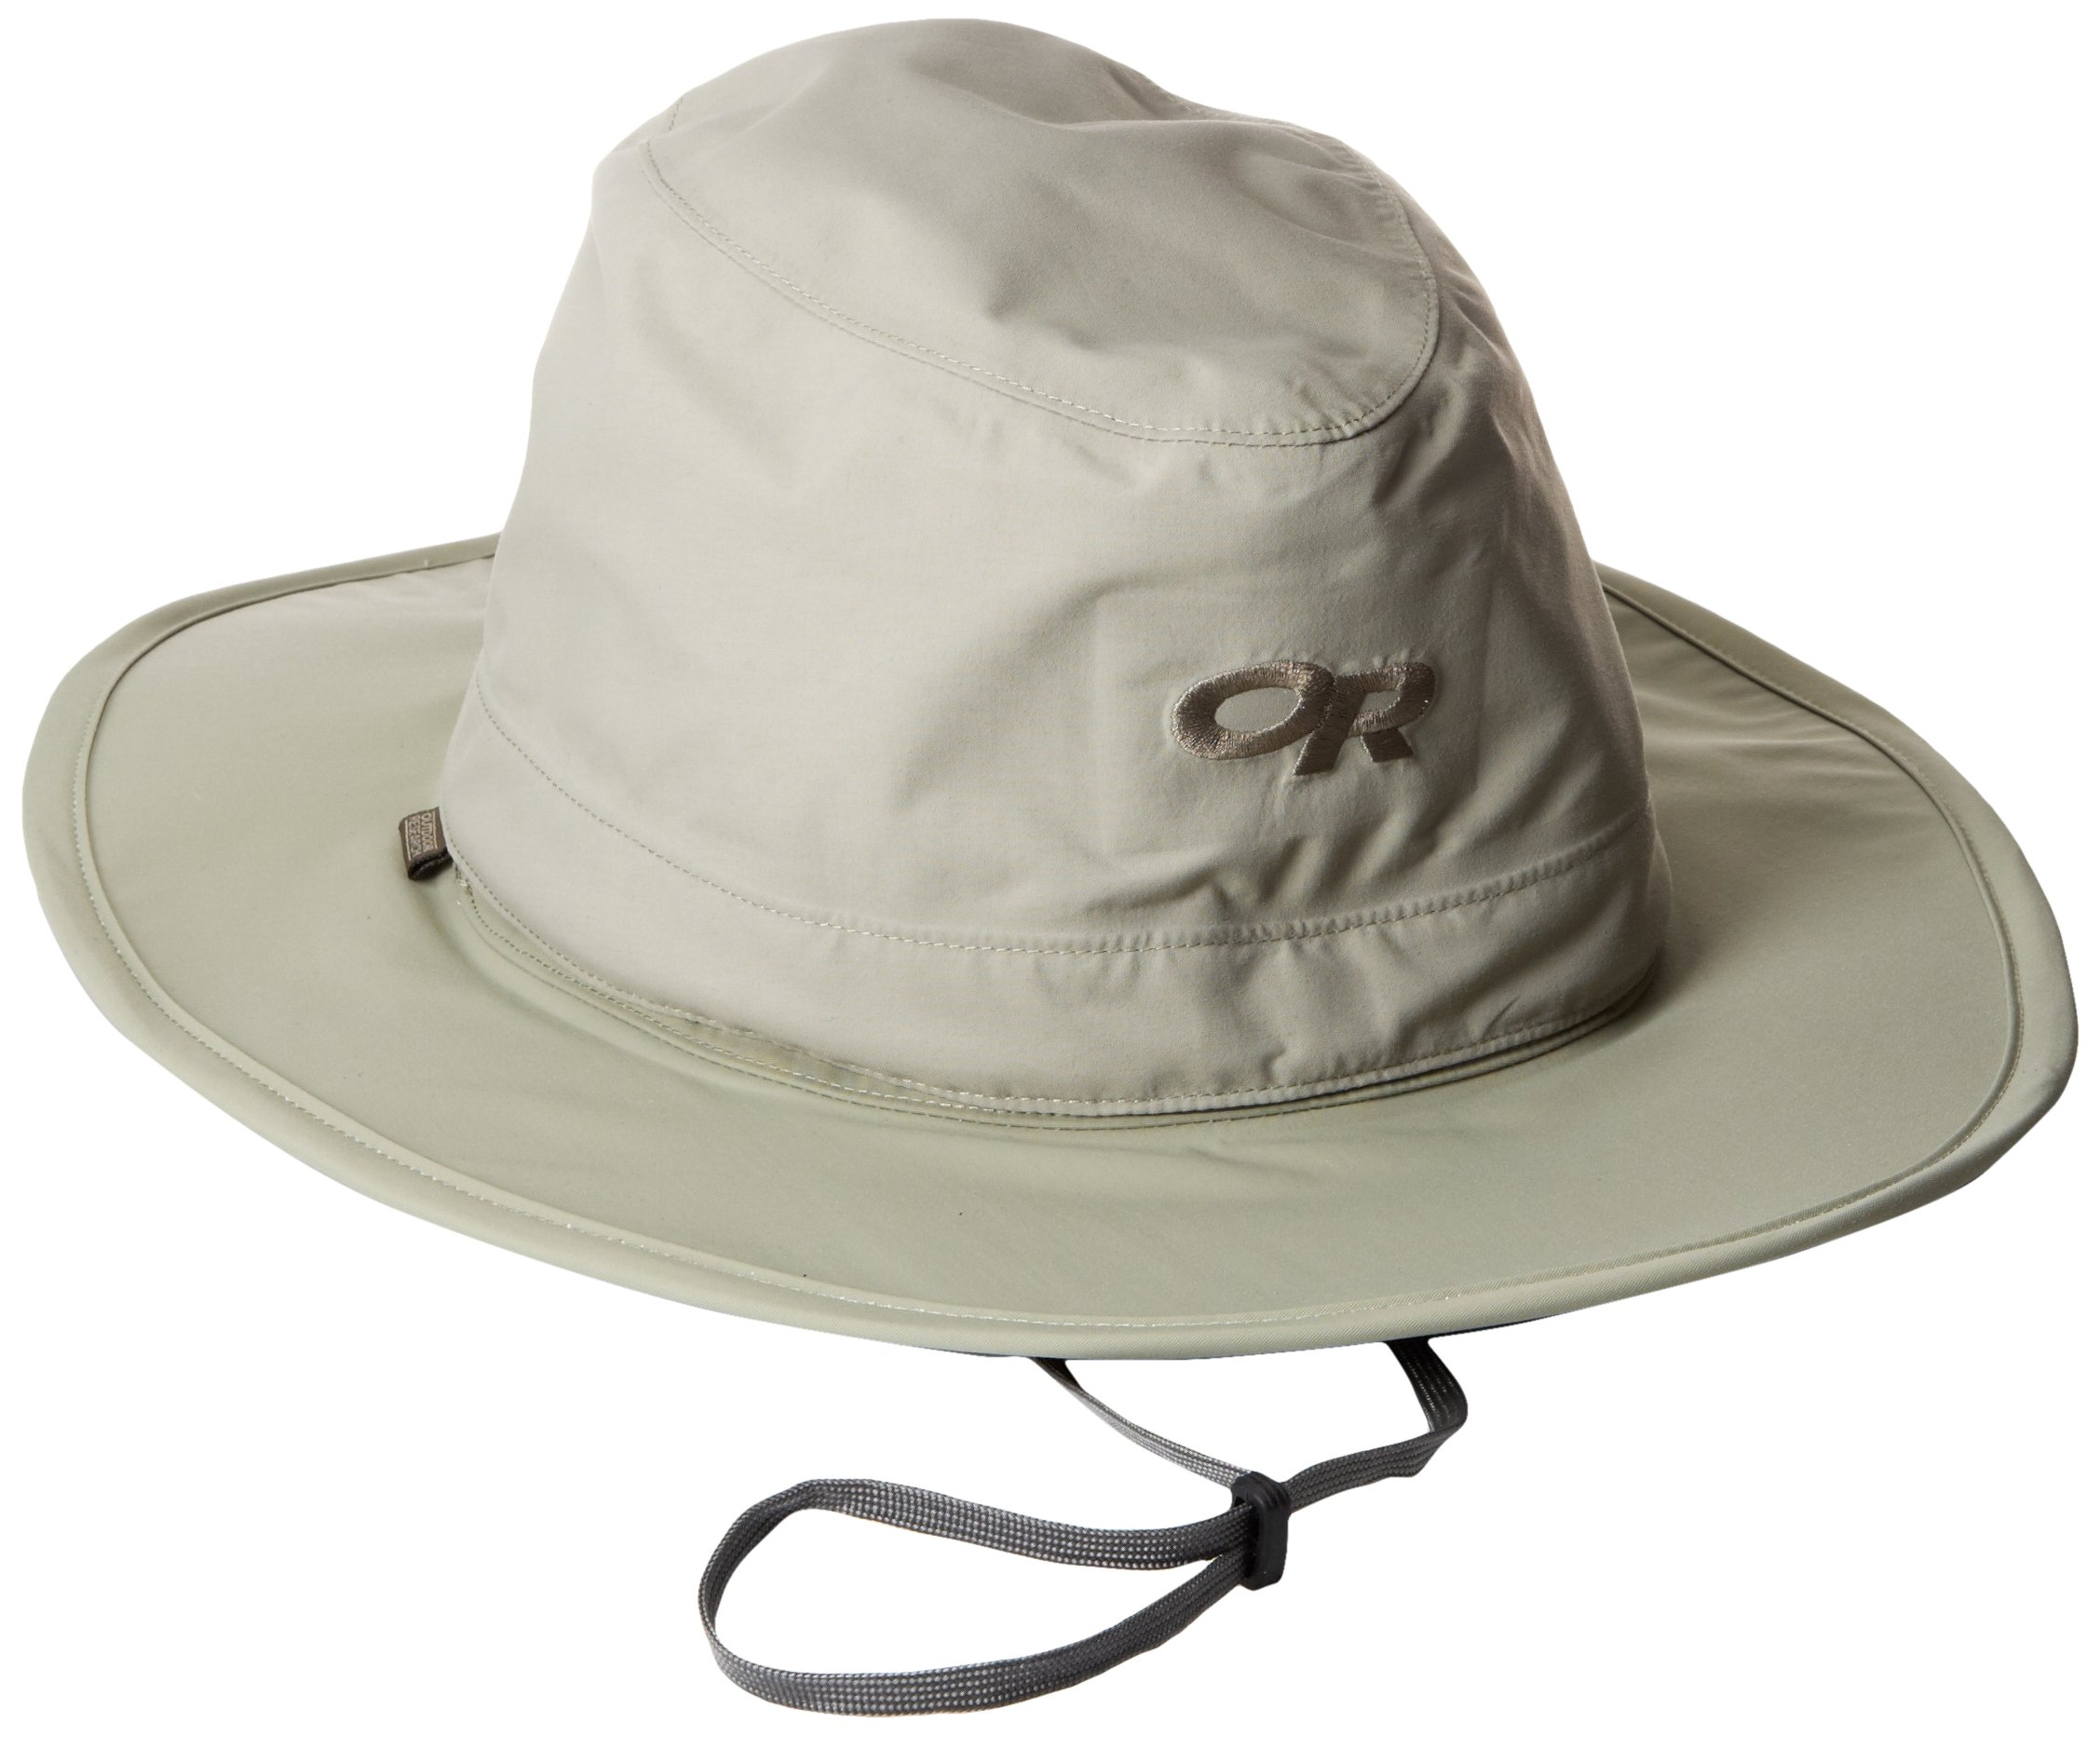 Outdoor Research Ghost Rain Hat, Khaki, Medium